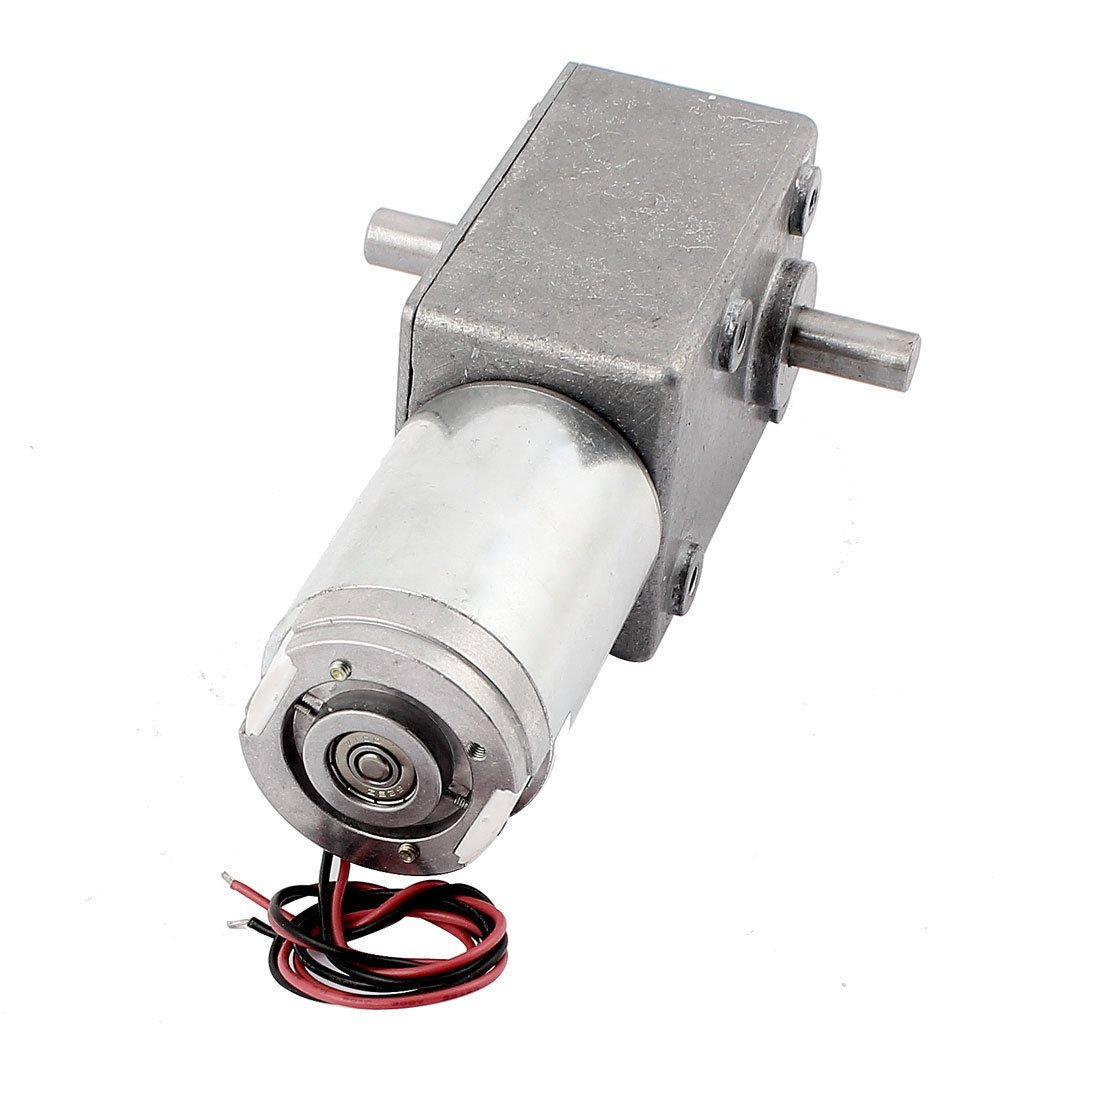 DC 24V 9RPM 1.5A 120KG.CM Dual Shafts High Torque Reversible Worm Gear Motor